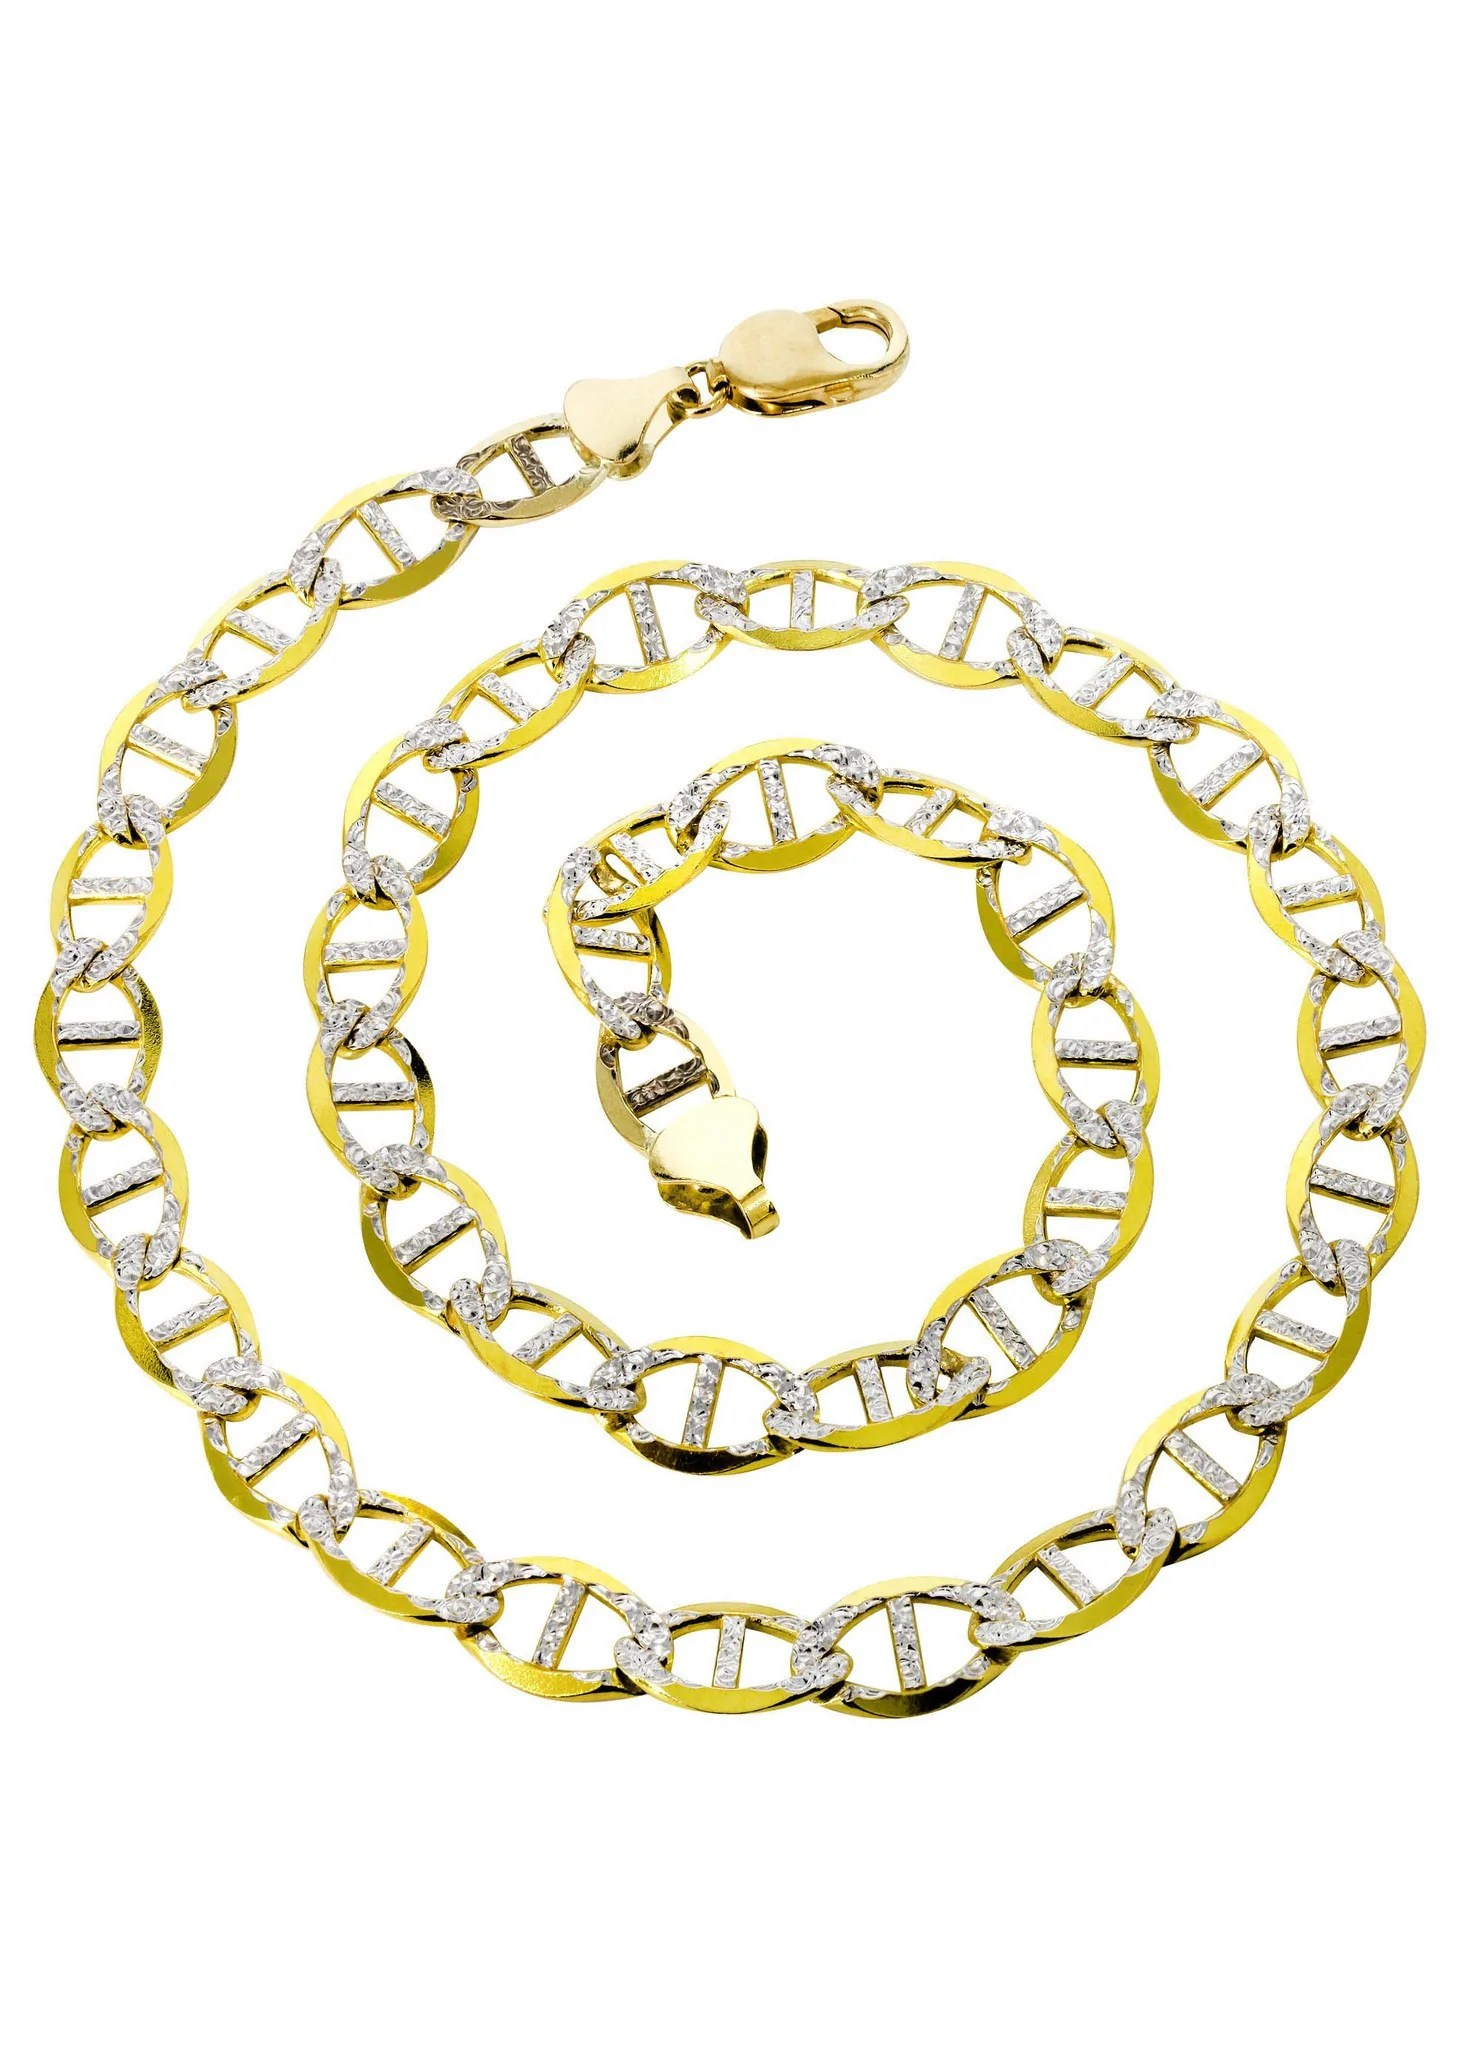 14k Gold Chain - Solid Diamond Cut Mariner Frostnyc